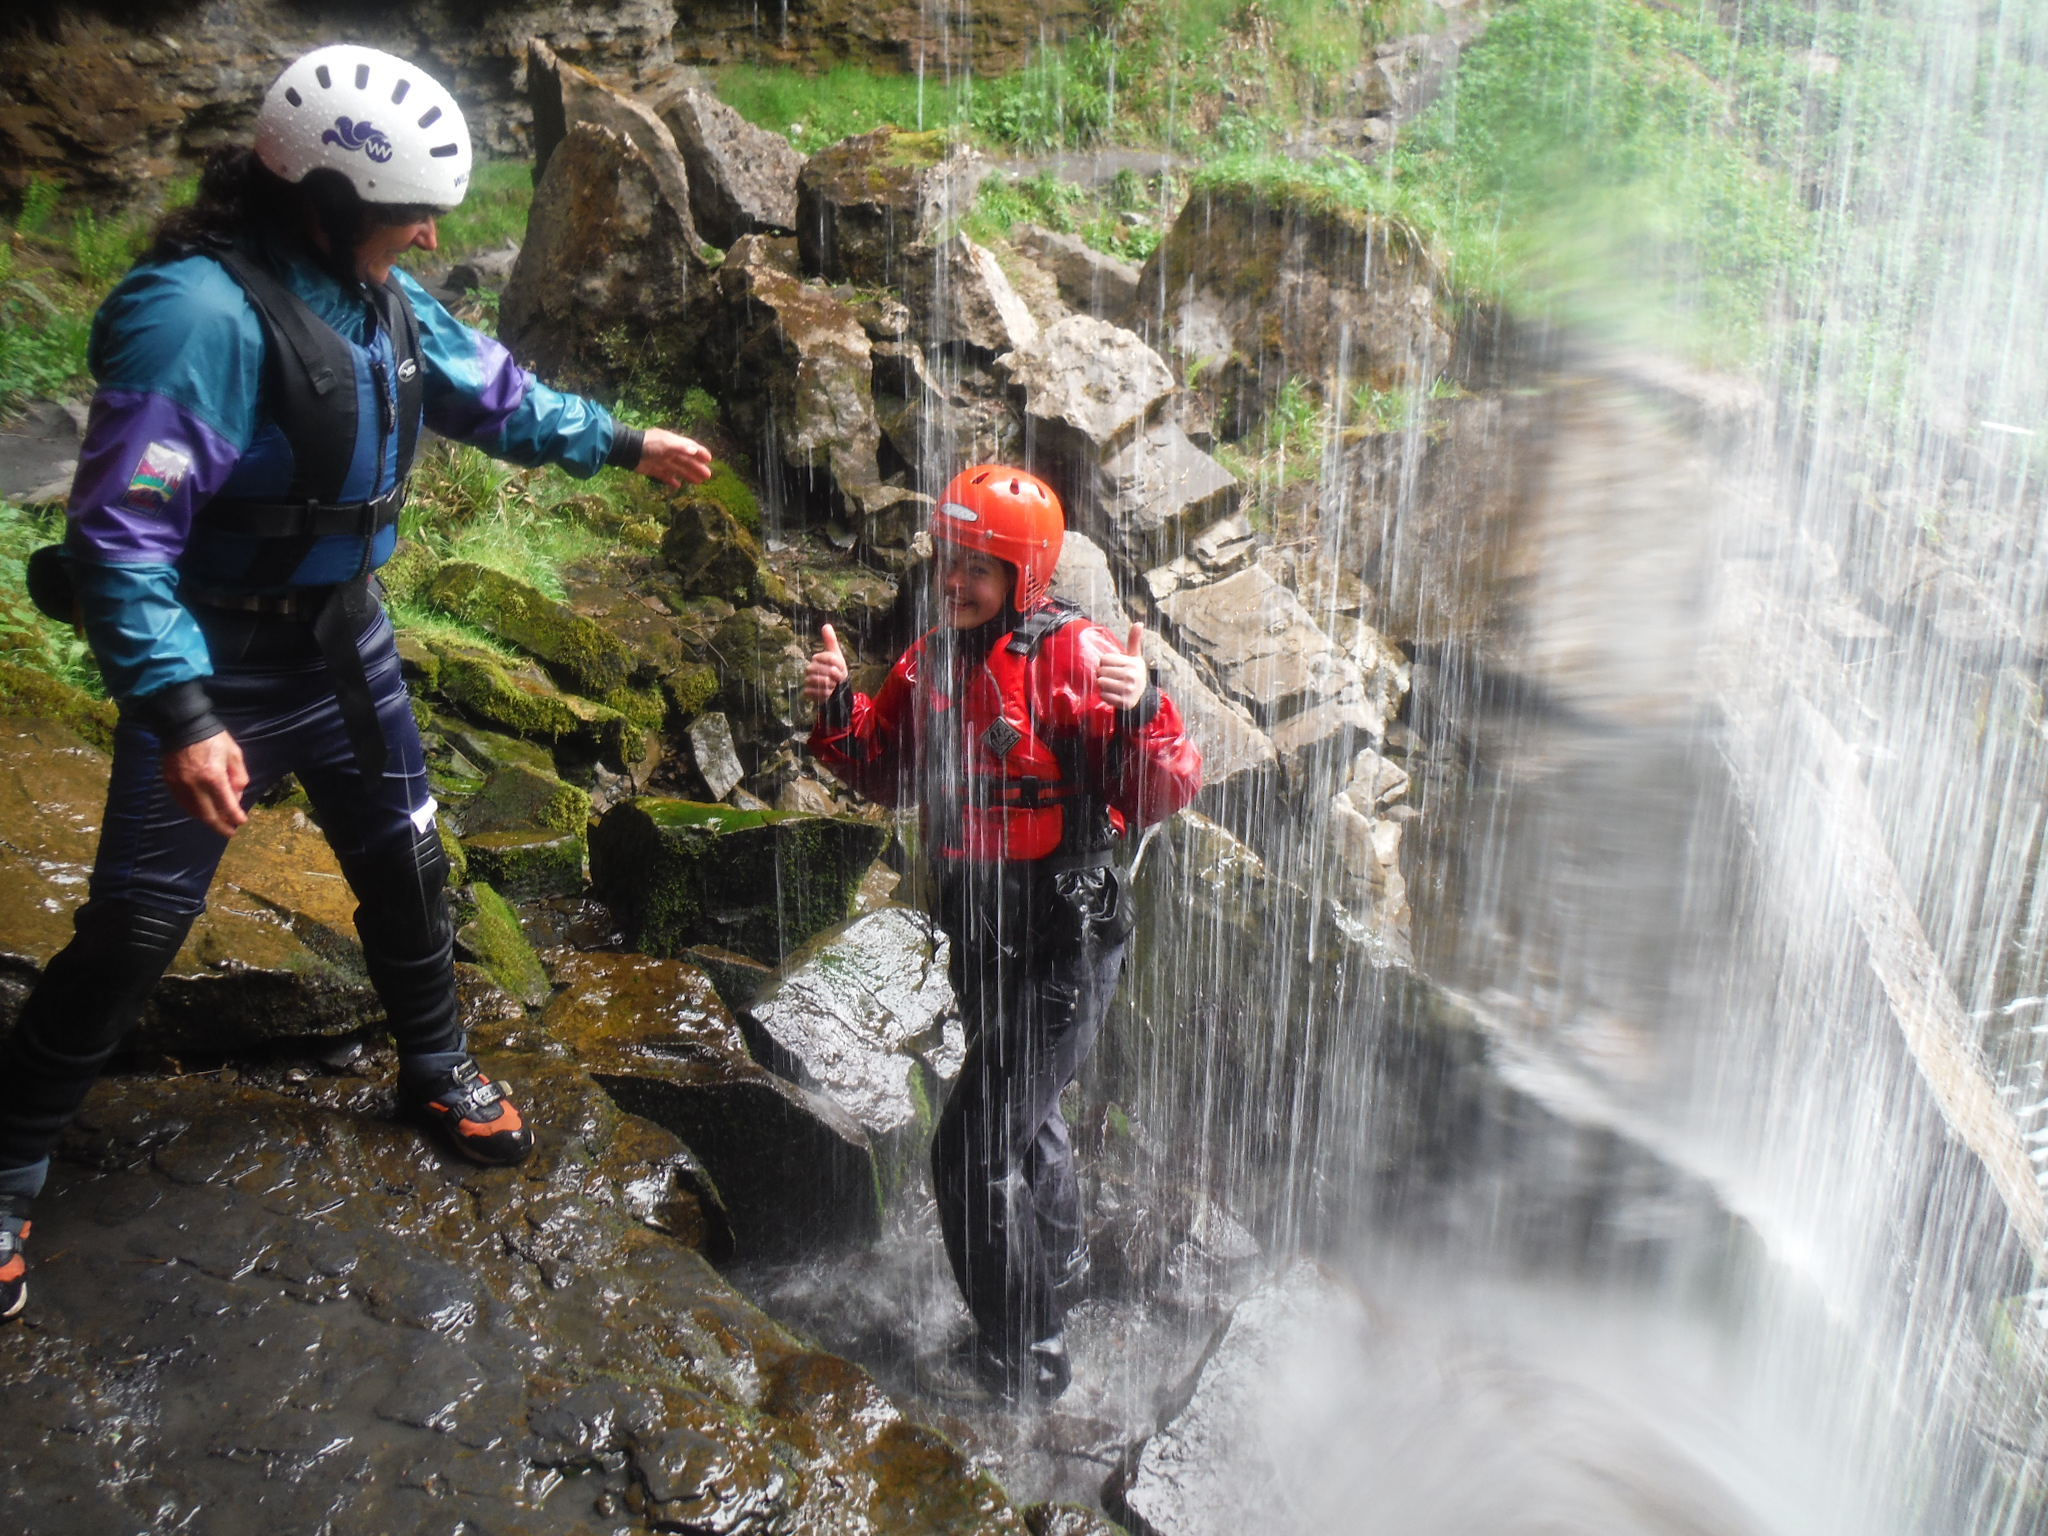 Gorge walking in Ash Ghyll near Barnard Castle